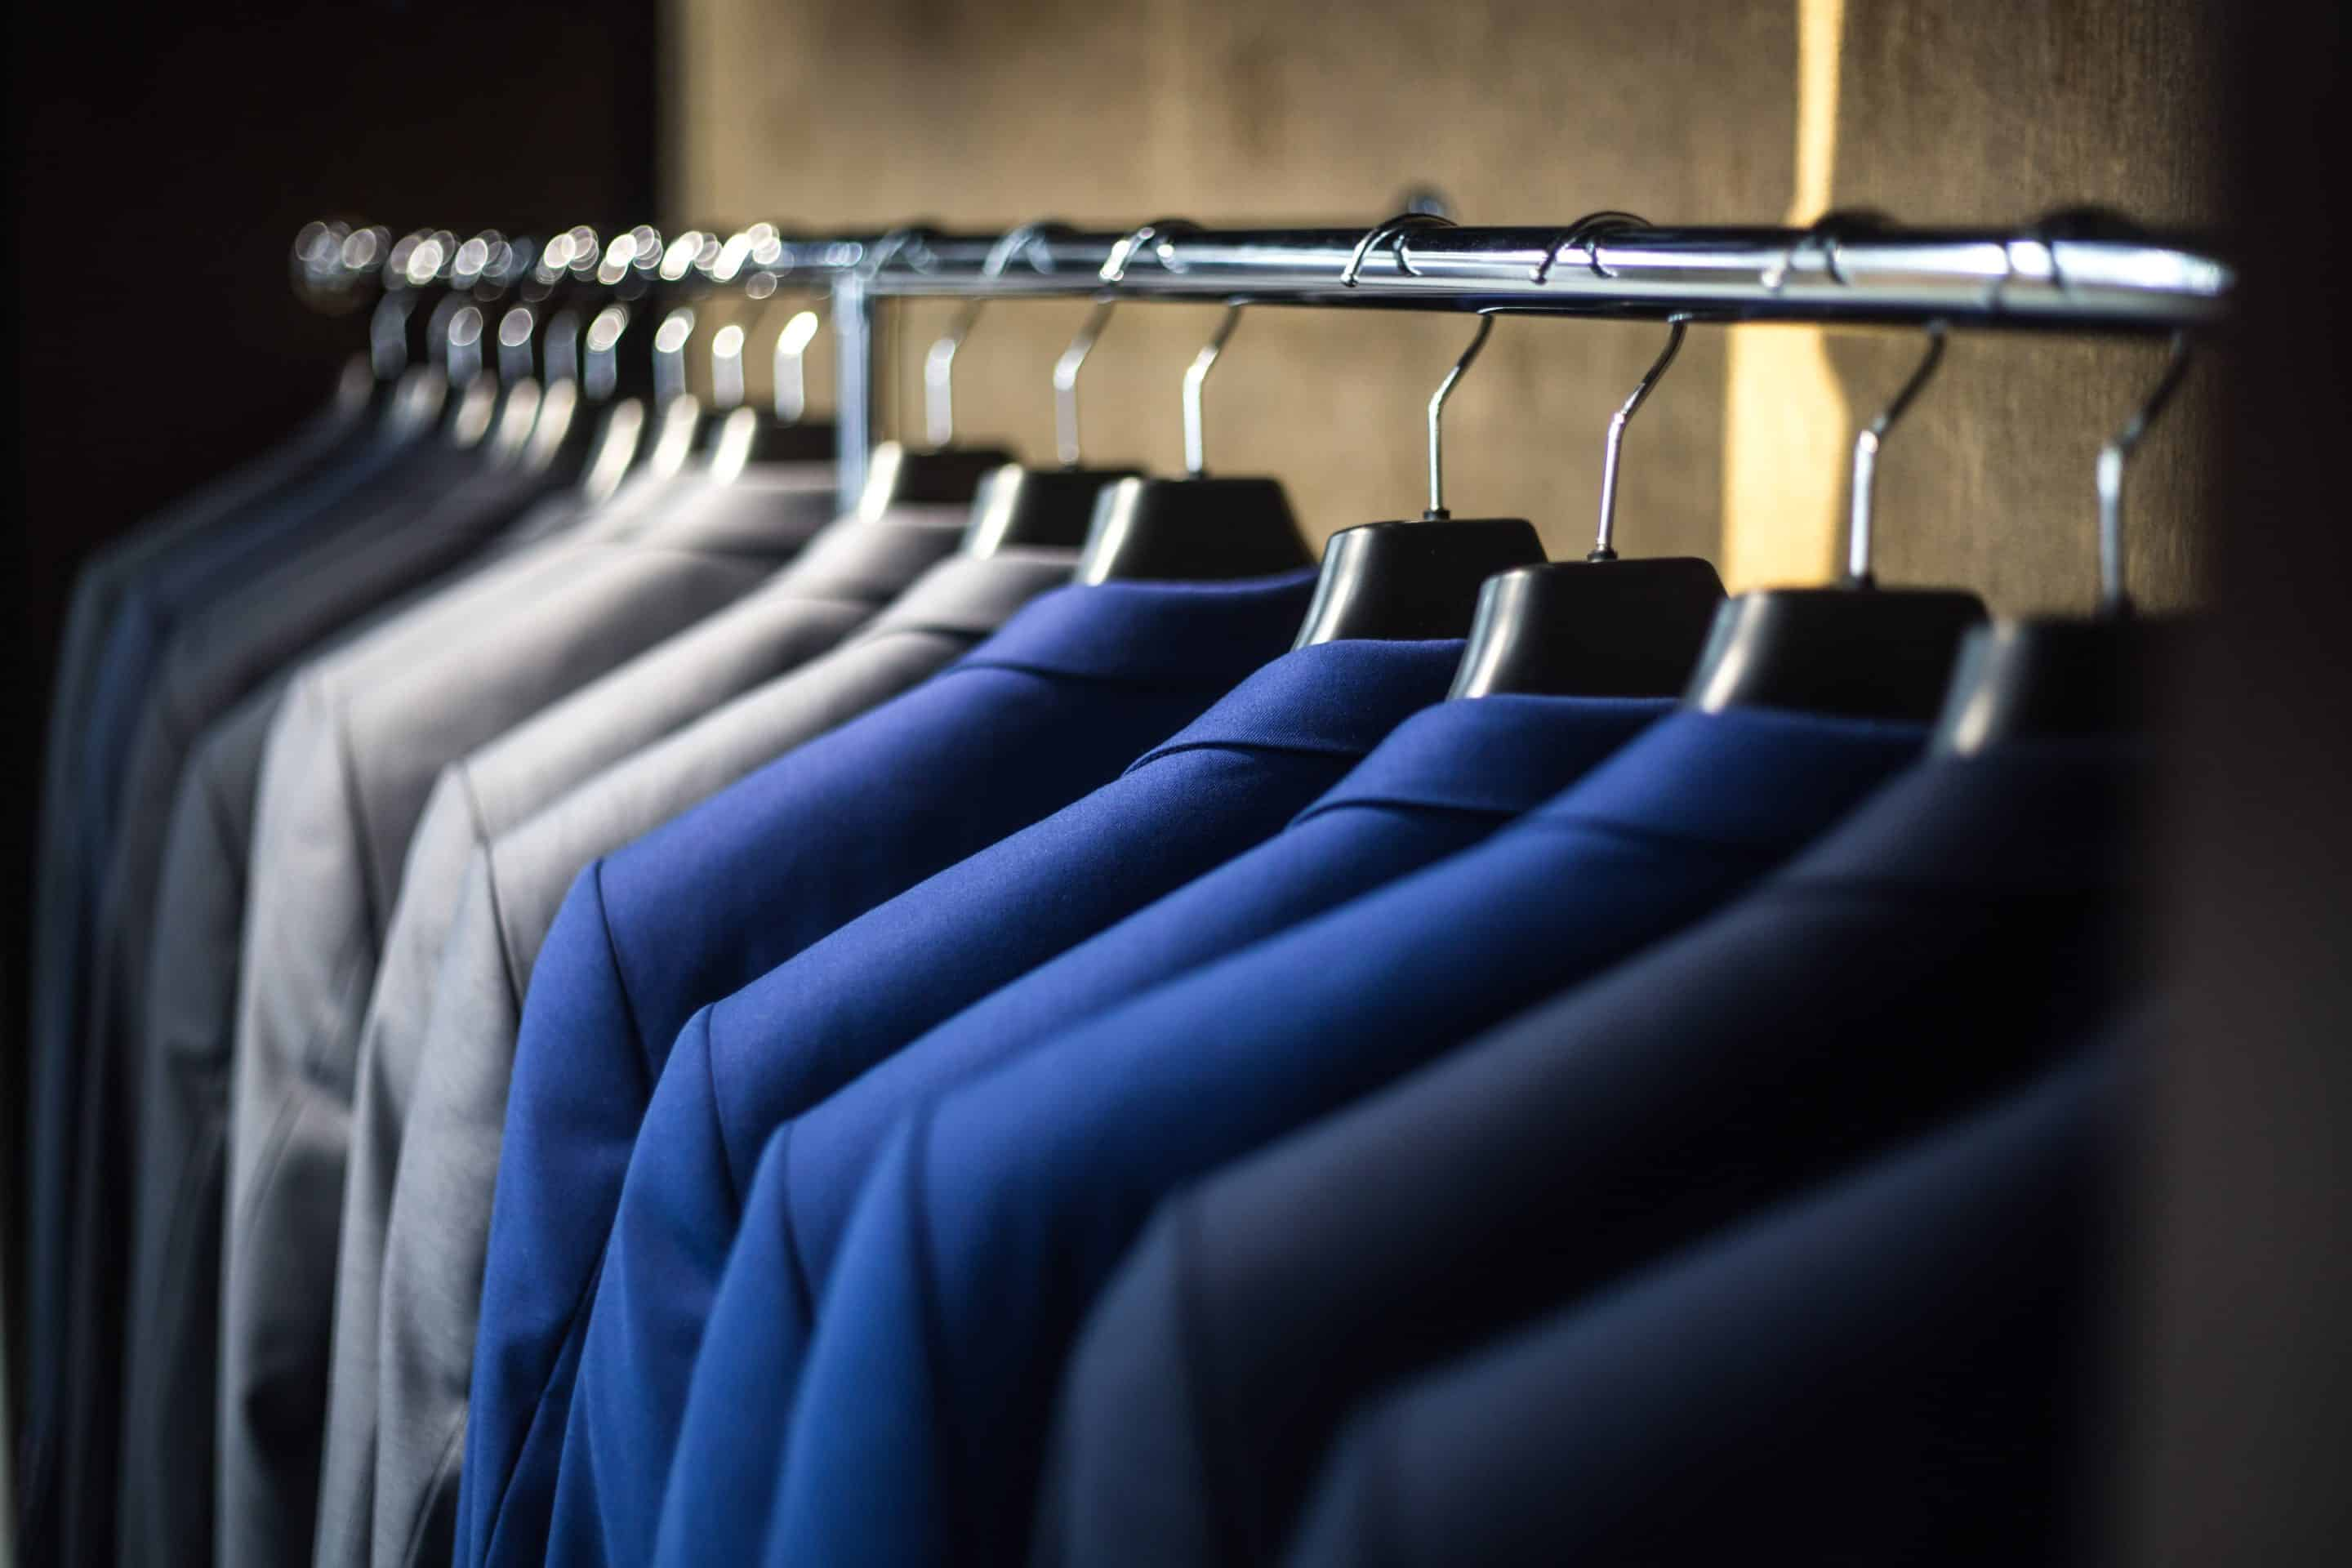 A row of grey and blue shirts hanging